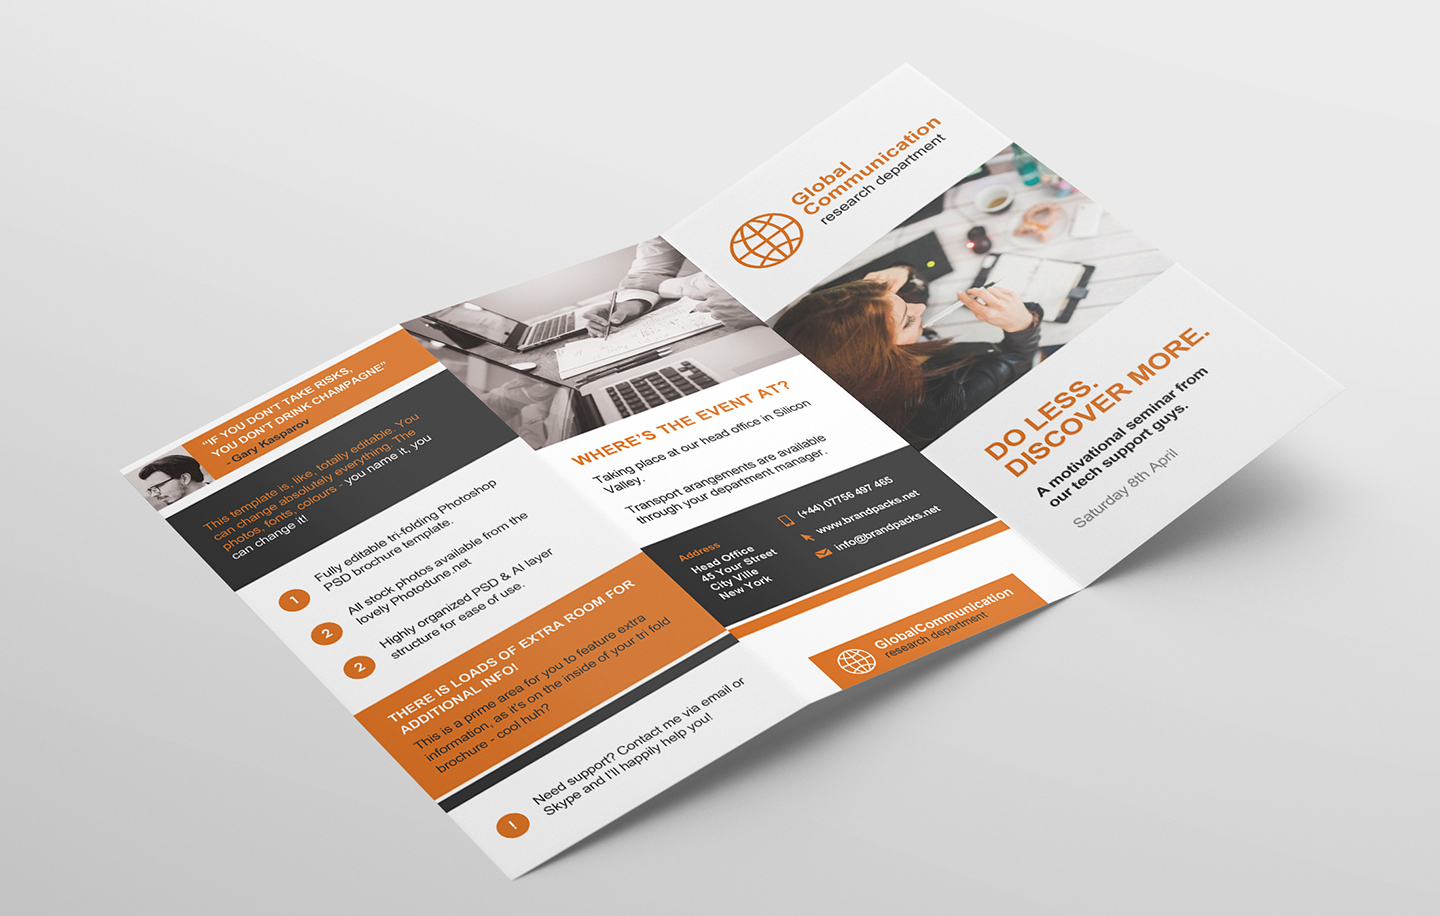 Free 3 Fold Brochure Template For Photoshop & Illustrator Pertaining To Brochure 3 Fold Template Psd